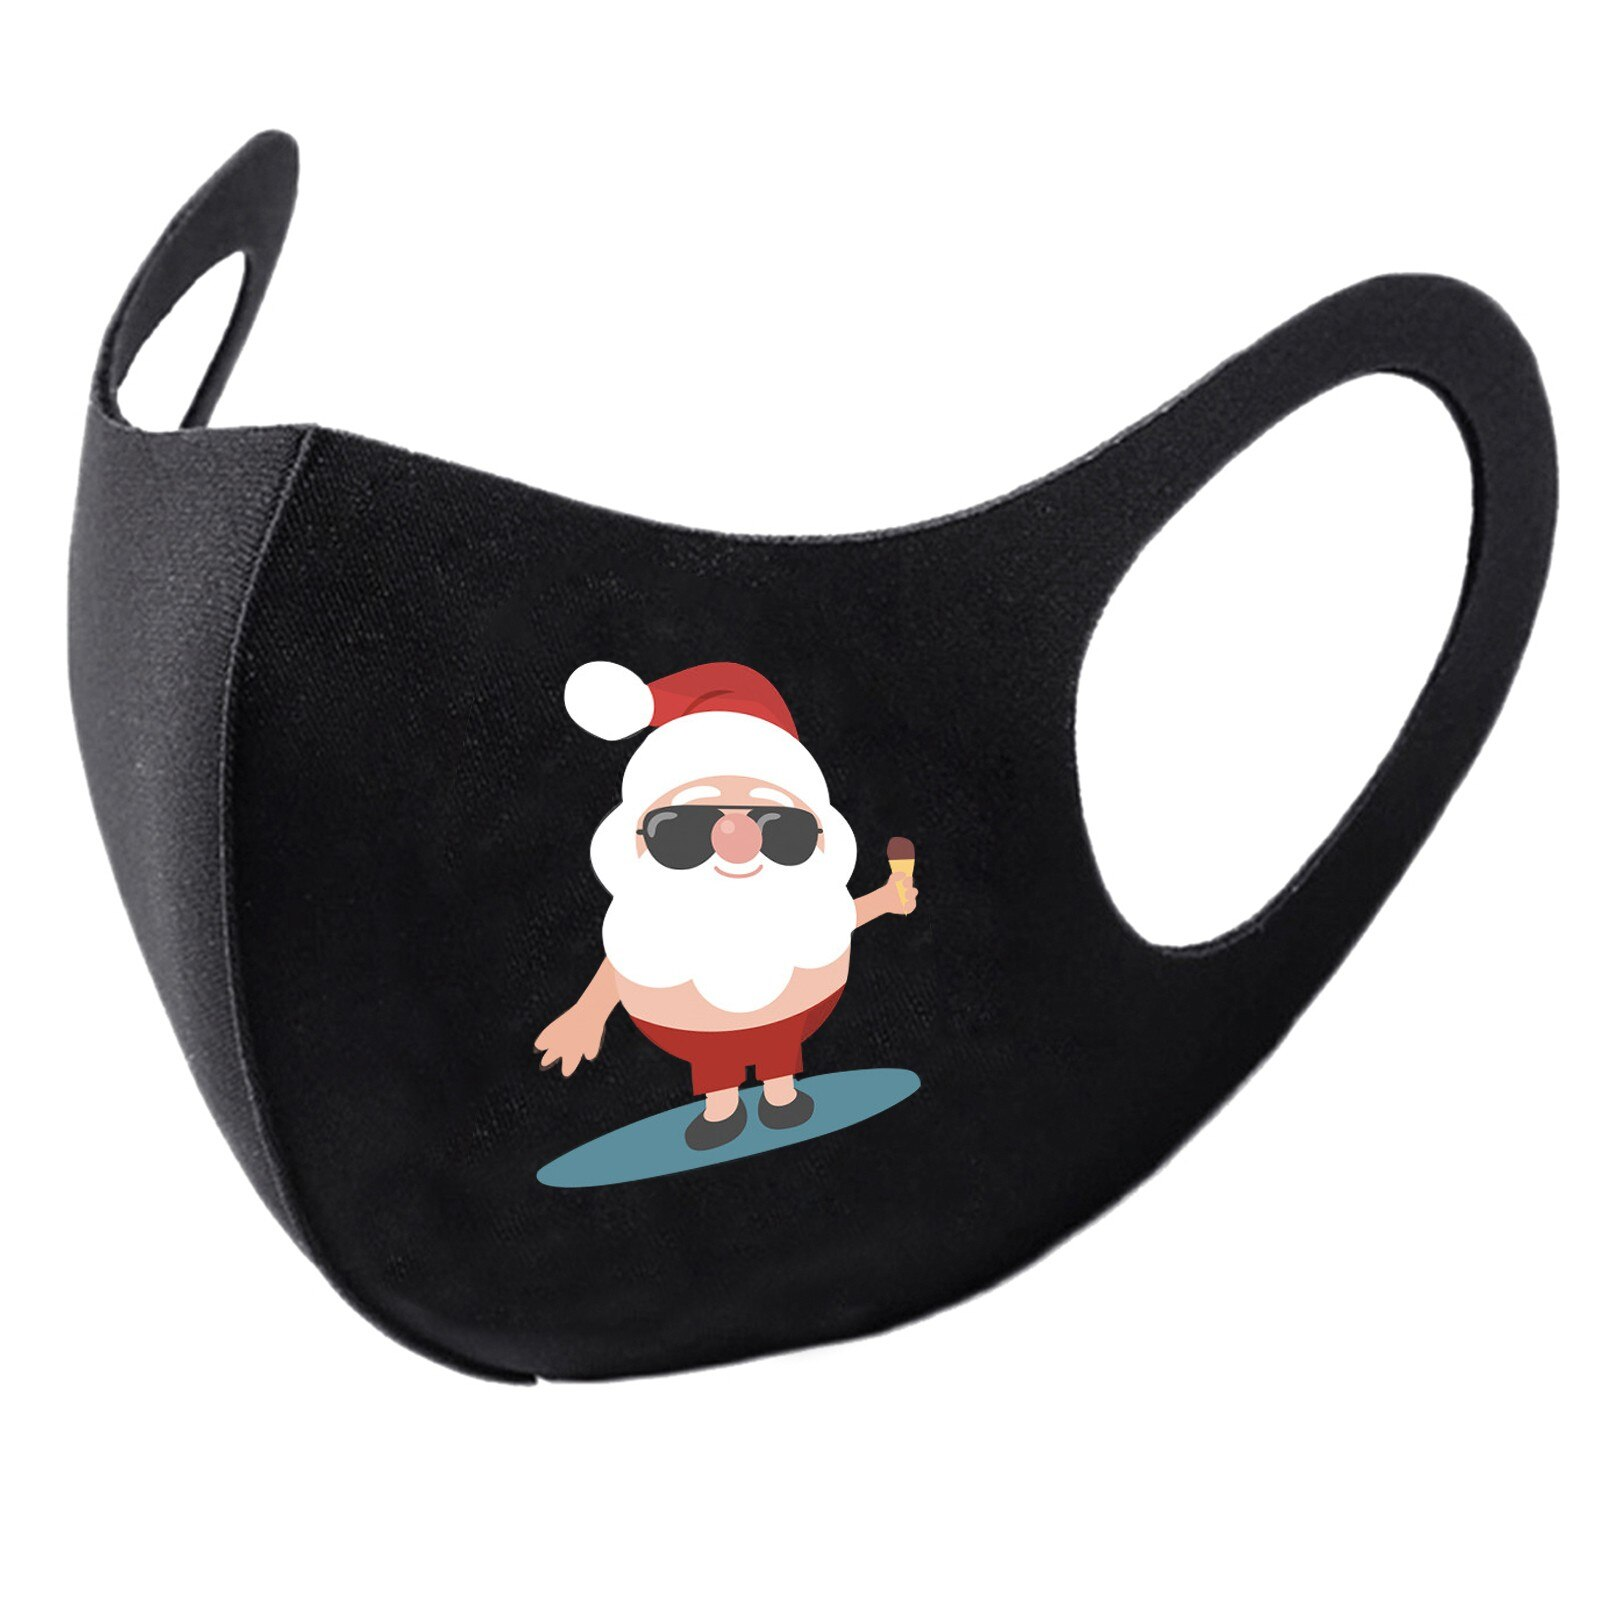 5pc Adult Christmas Face Mask Washable Mouth Fabric Facial Mask For Protection Reusable Santa Earloop Mouth Caps Маска mask 9.29 2